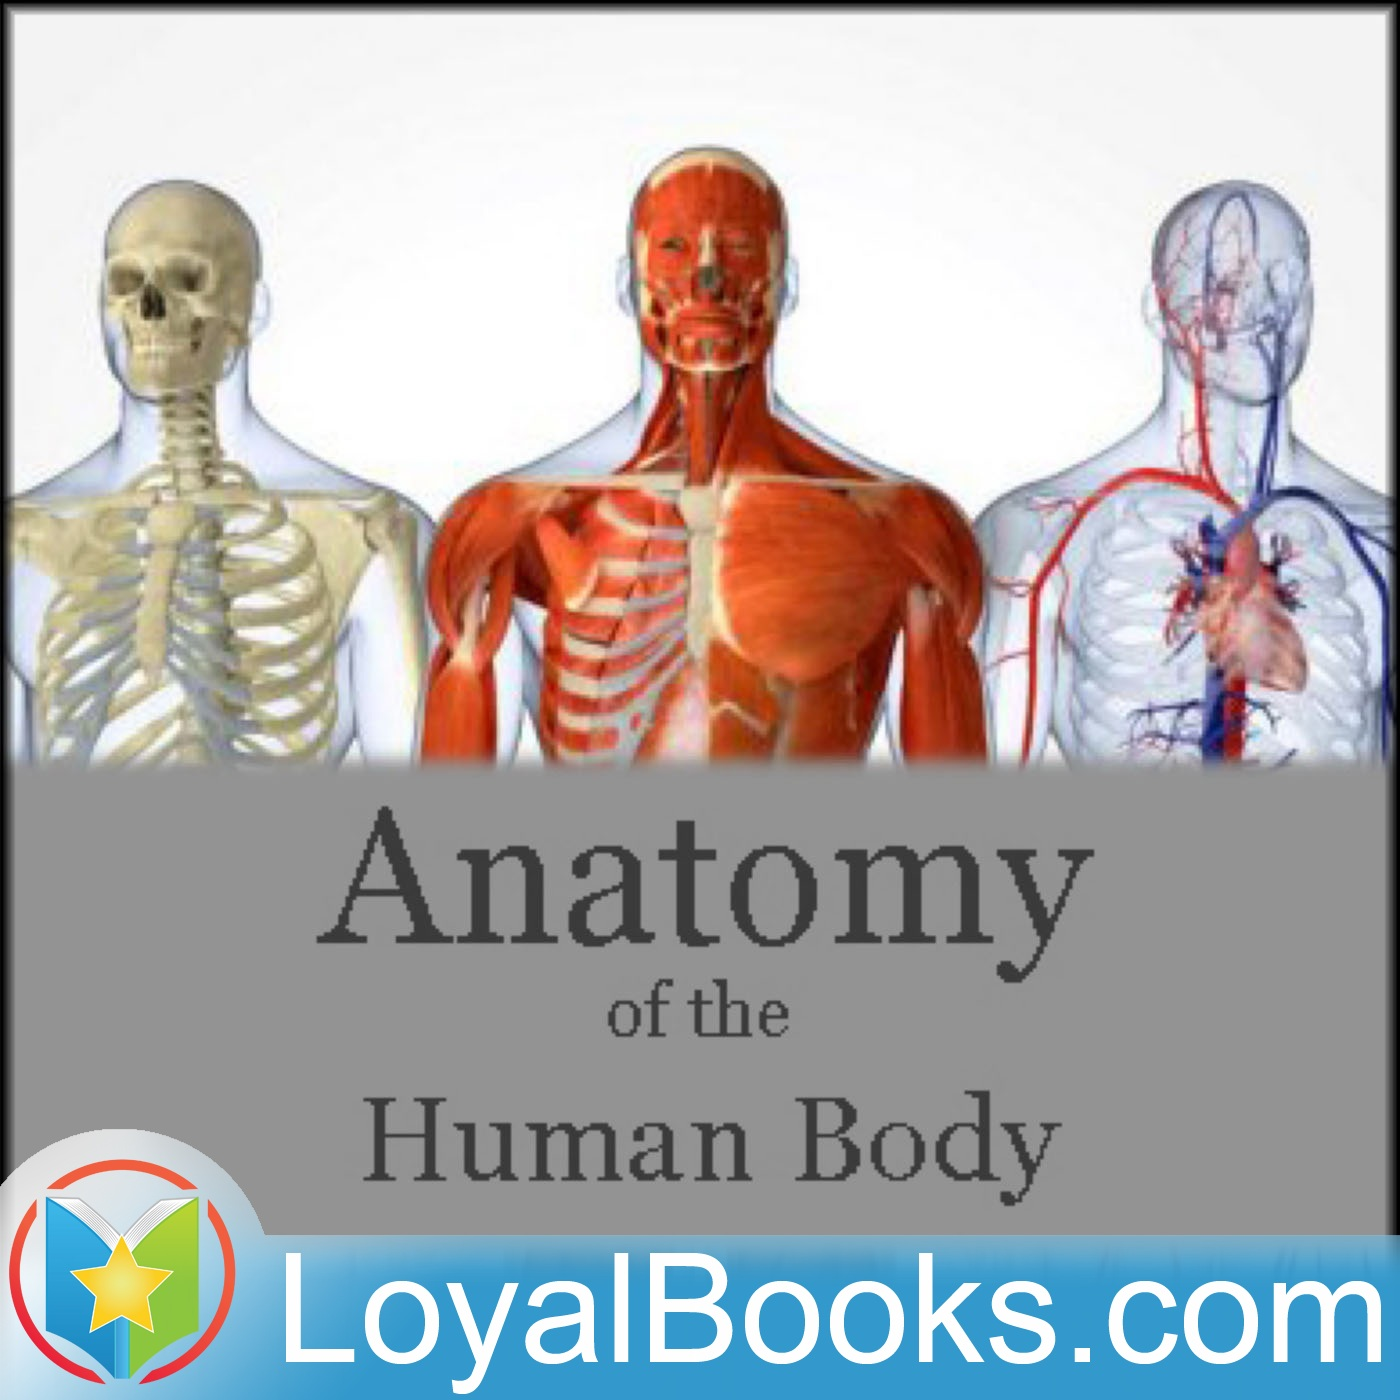 Anatomy Of The Human Body By Henry Gray By Books Should Be Free